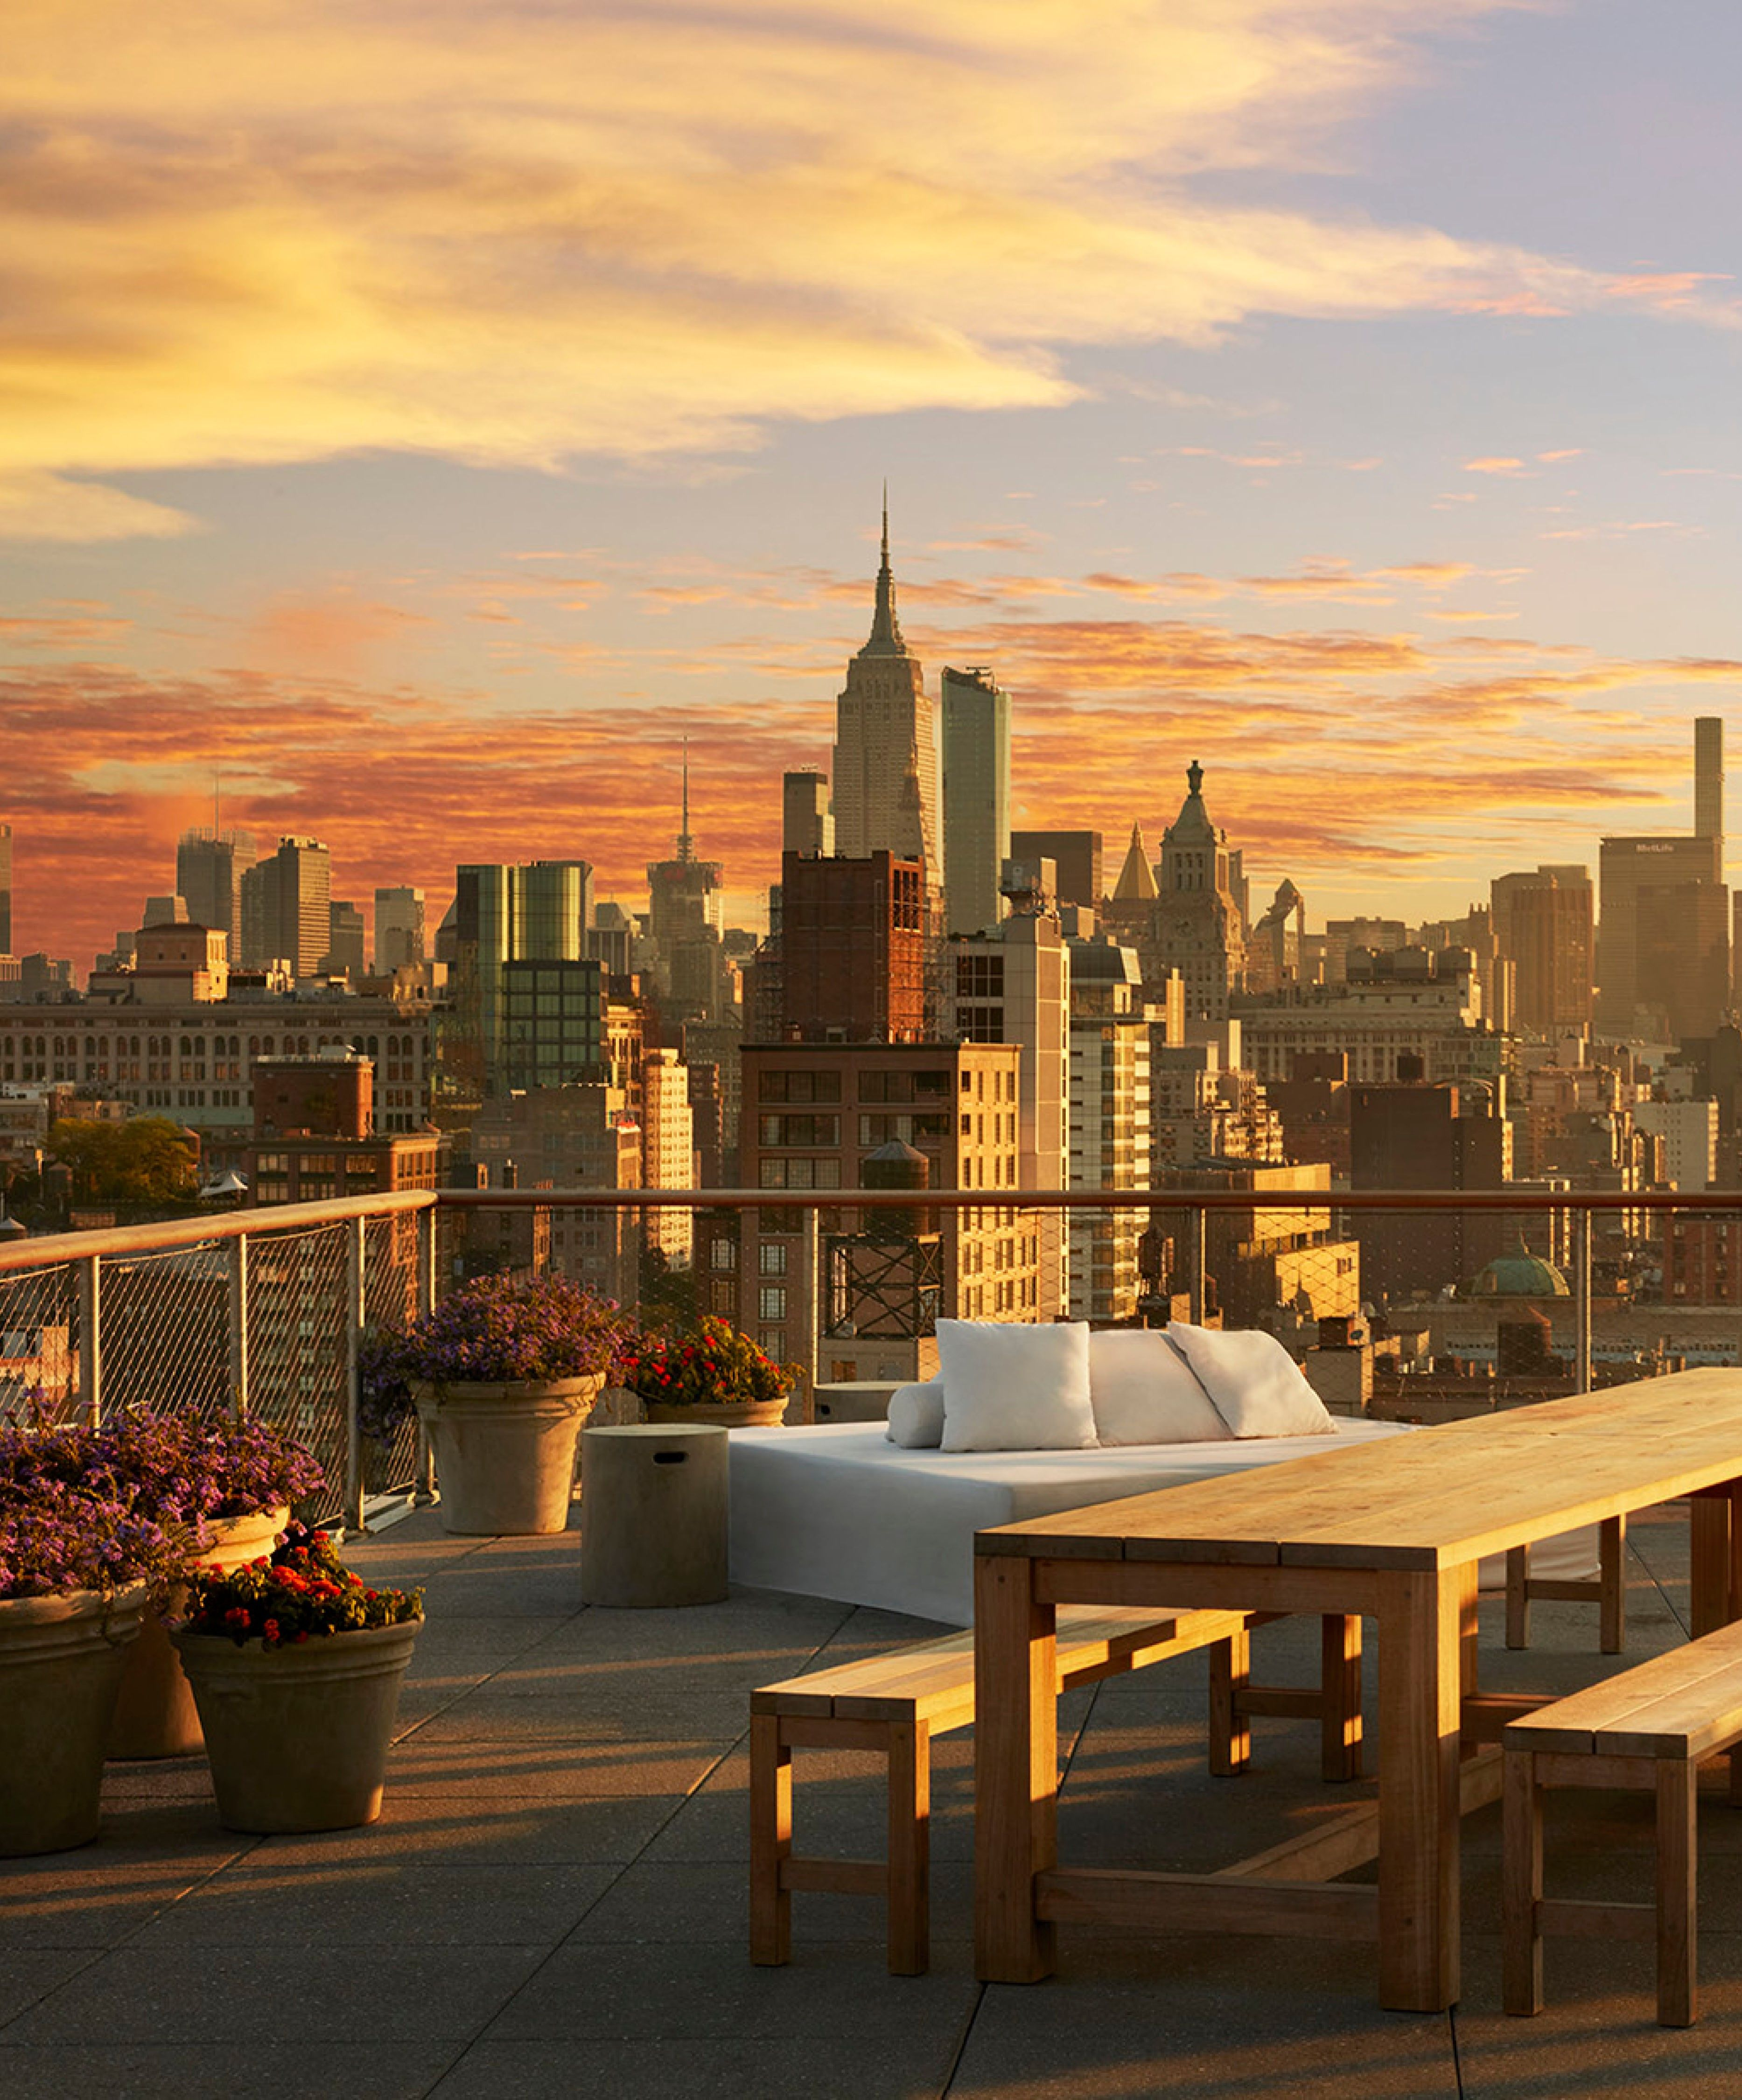 Public Hotel Nyc Rooftop Bars Nyc Nyc Rooftop Best Rooftop Bars